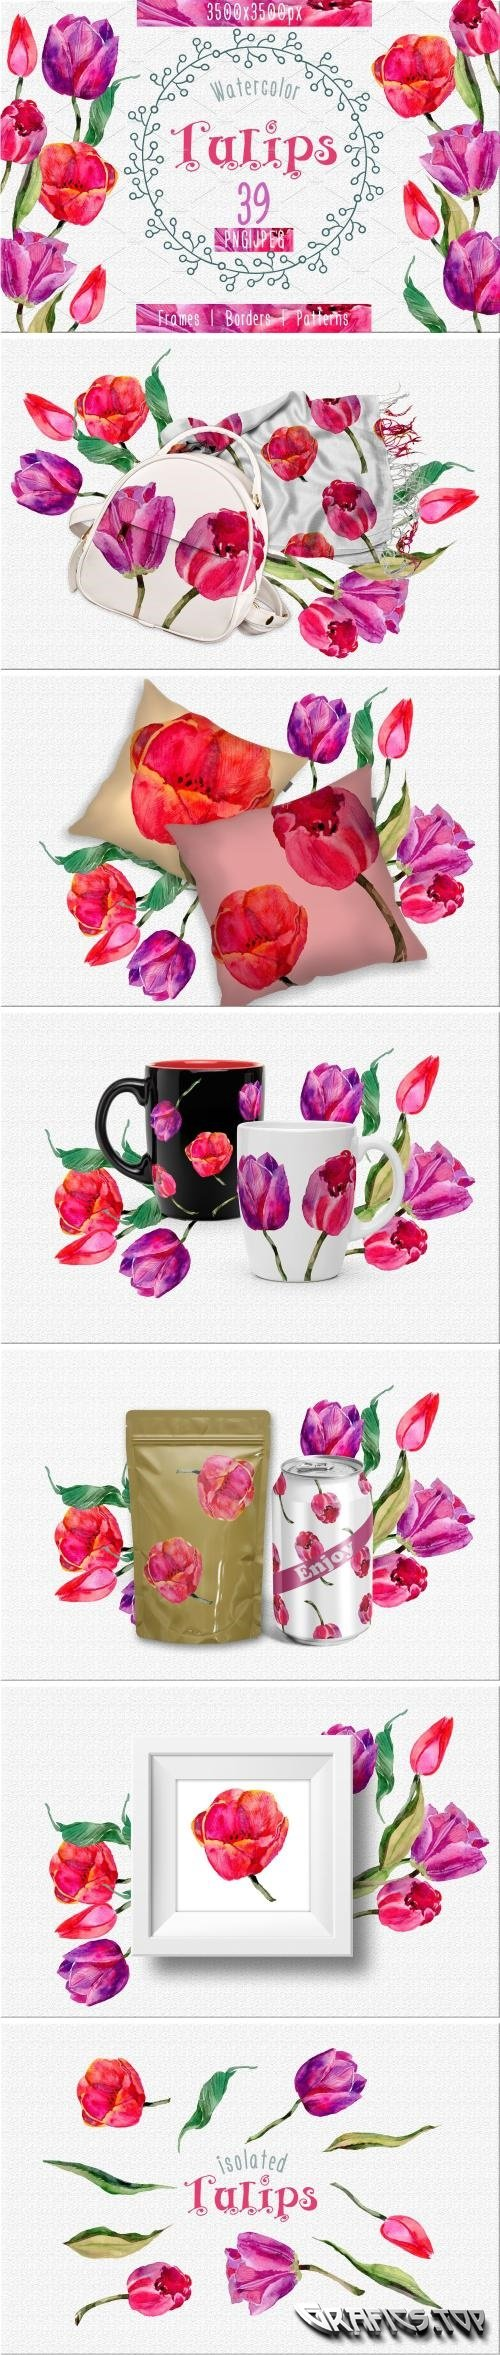 Tulips PNG watercolor flower set - 2392711